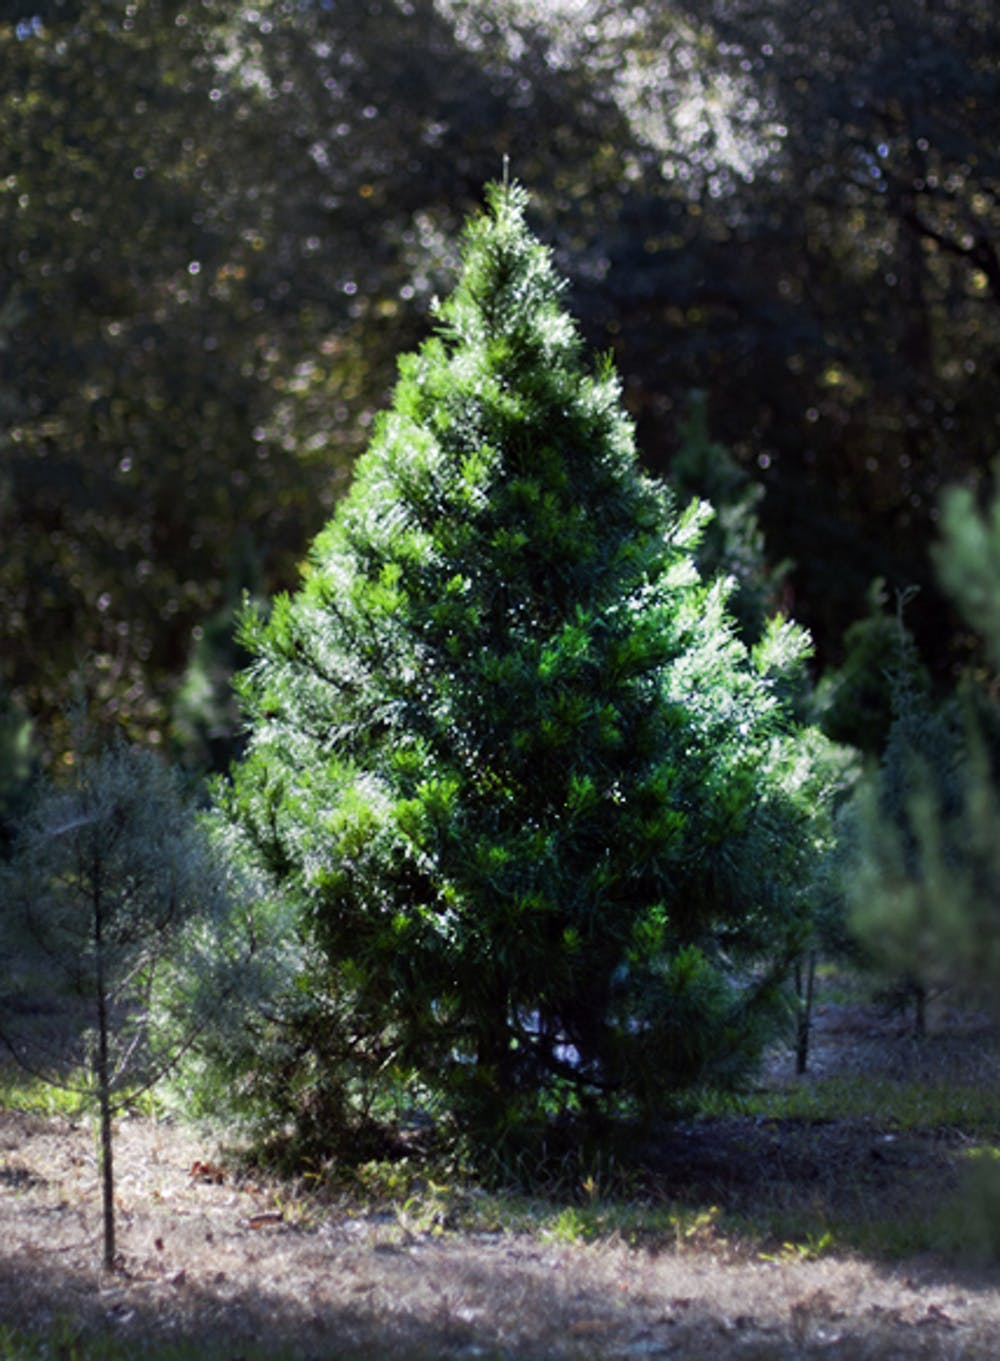 <p>The U.S. Department of Agriculture decided it would delay implementing a 15-cent fee on fresh Christmas trees sold on farms that sell more than 500 trees a year.</p>